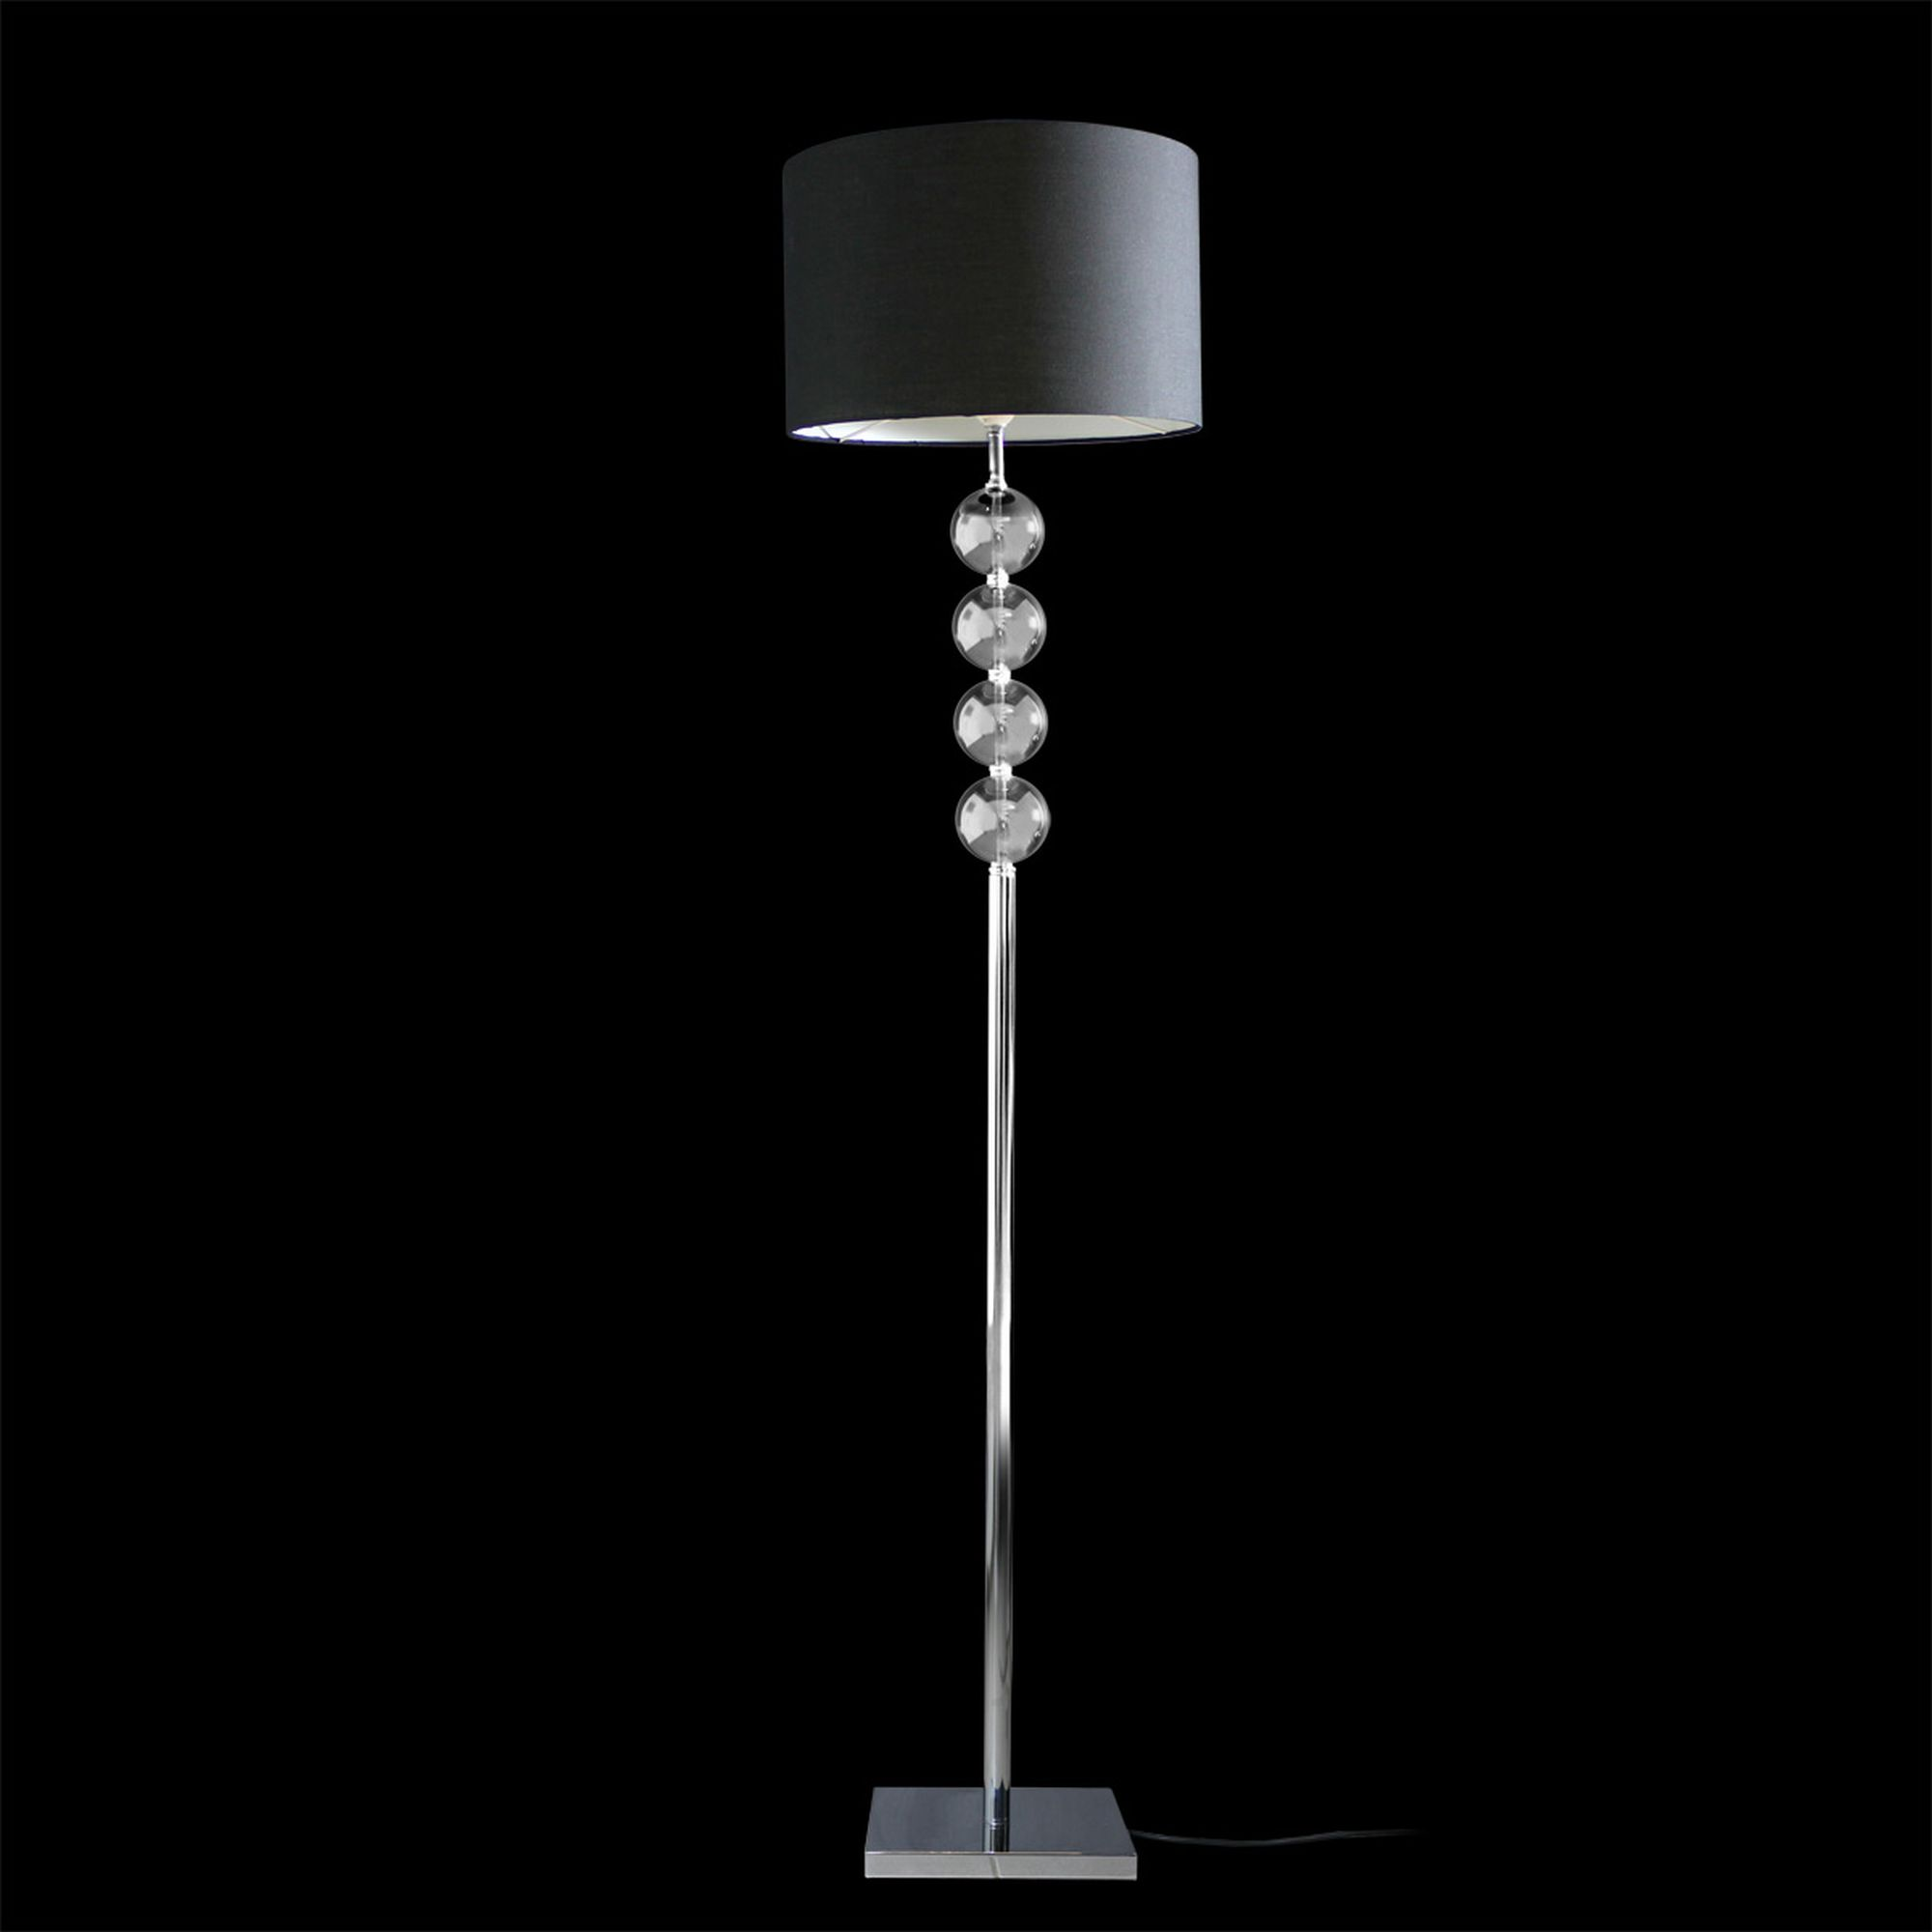 moderne stehleuchte stehlampe lampe wohnzimmer. Black Bedroom Furniture Sets. Home Design Ideas